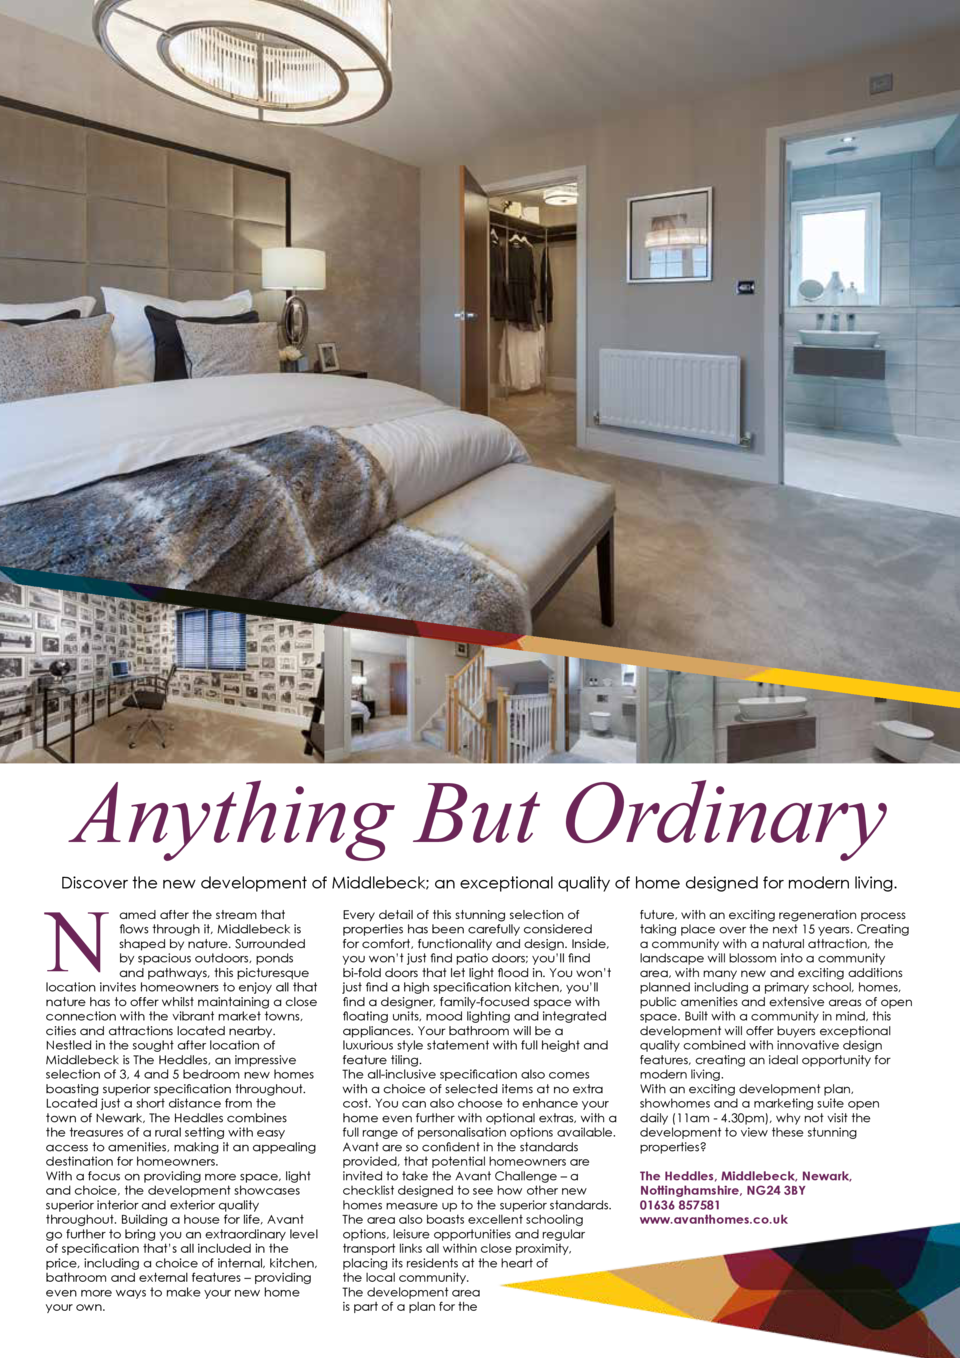 Anything But Ordinary N  Discover the new development of Middlebeck  an exceptional quality of home designed for modern li...